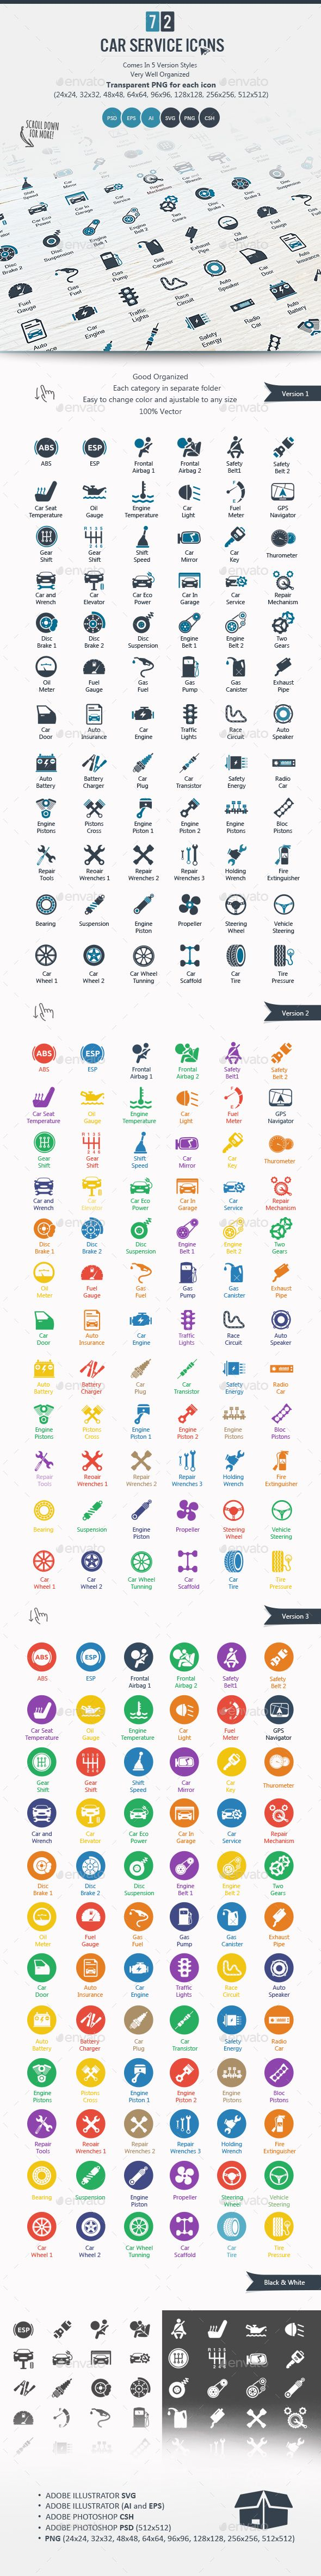 Car Service Icons — Photoshop PSD #safety belt #tire • Available here → https://graphicriver.net/item/car-service-icons/14173118?ref=pxcr